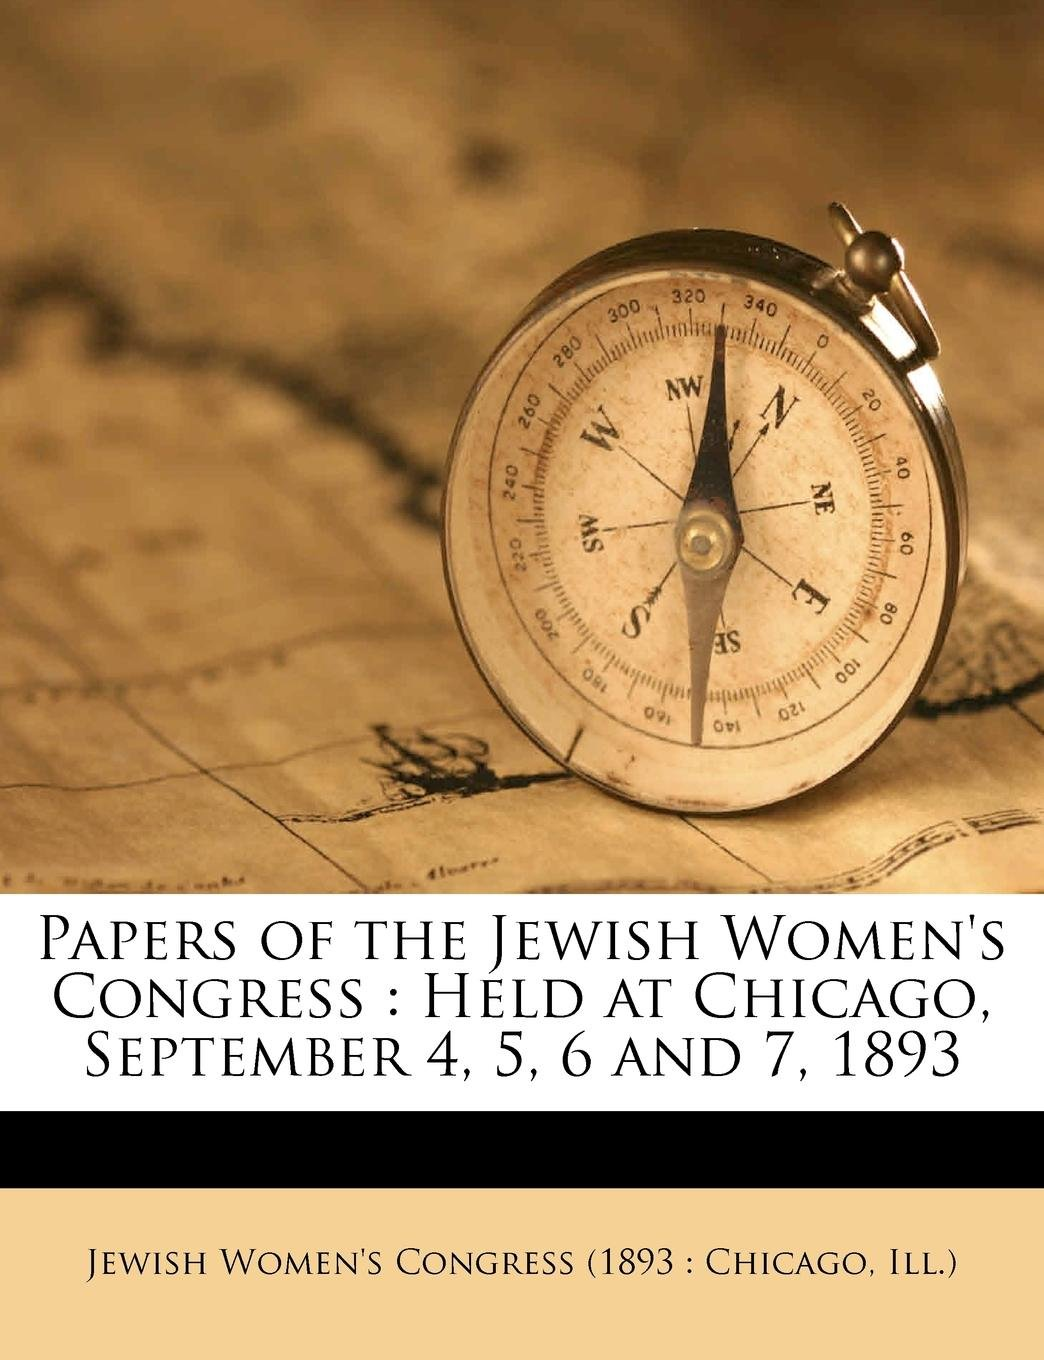 Papers of the Jewish Women's Congress: Held at Chicago, September 4, 5, 6 and 7, 1893 ebook